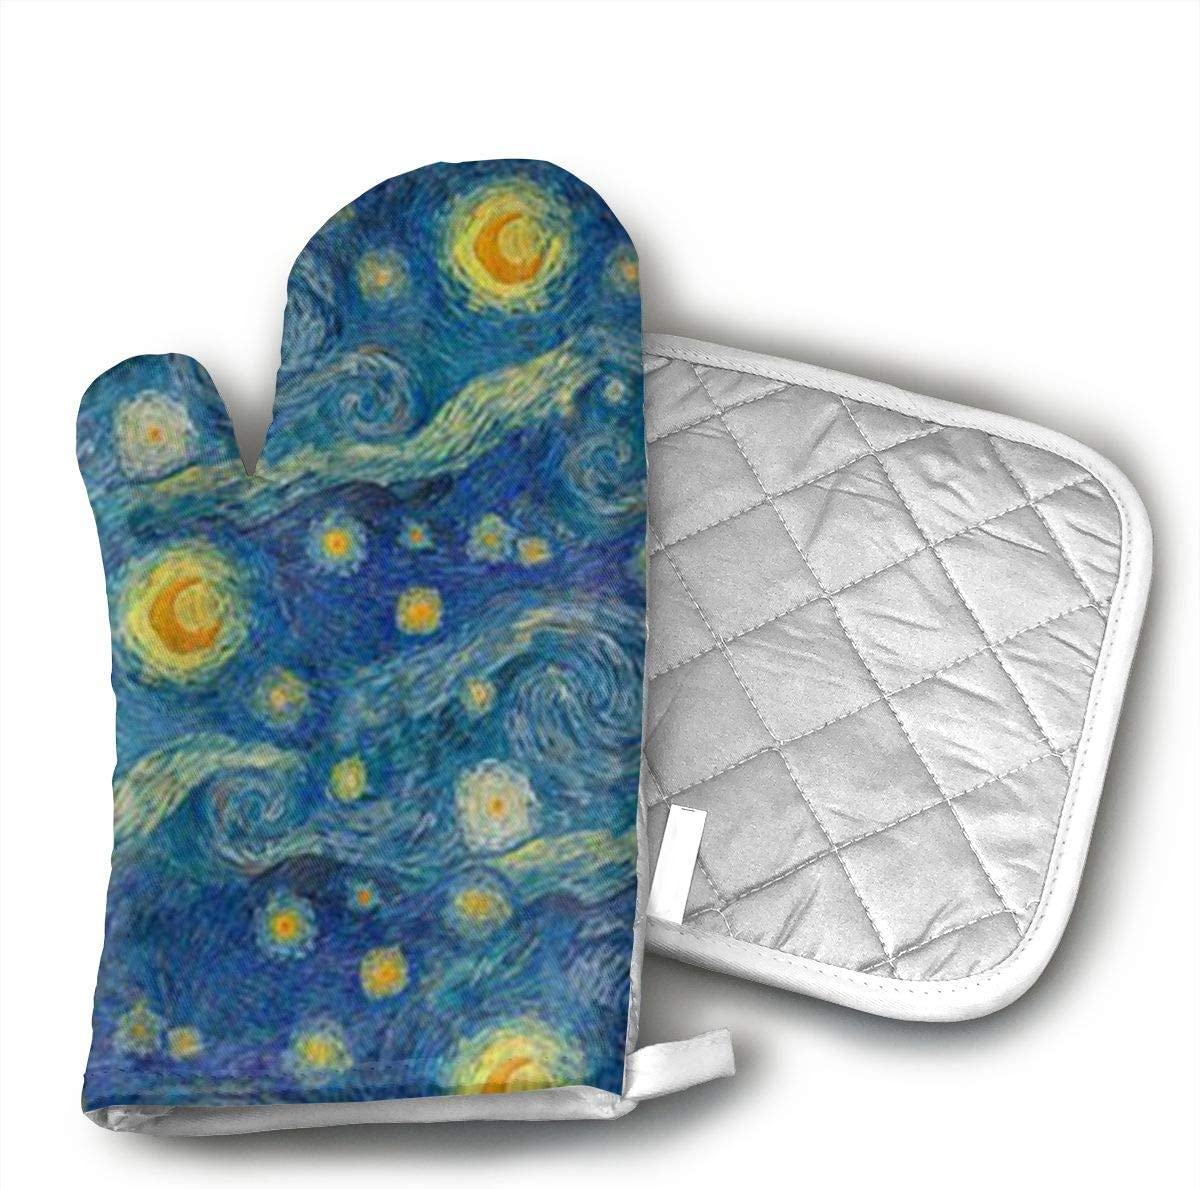 UYRHFS Starry Night Oven Mitts and Pot Holder Kitchen Set with, Heat Resistant, Oven Gloves and Pot Holders 2pcs Set for BBQ Cooking Baking